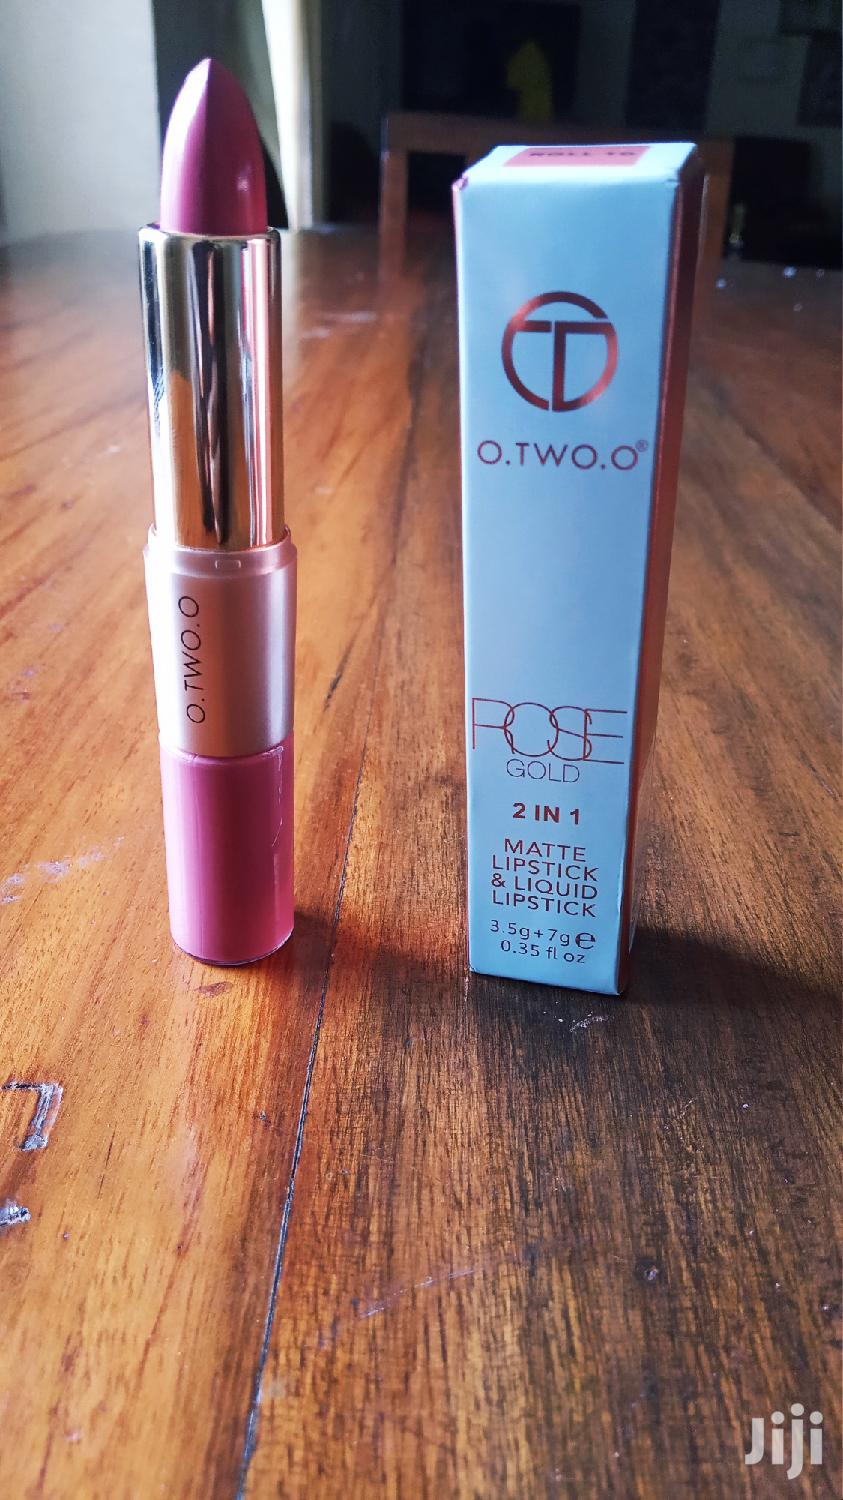 O. TWO. O High Lip Gloss Long Lasting Waterproof Matte Lipstick (Pink) | Makeup for sale in Kampala, Central Region, Uganda